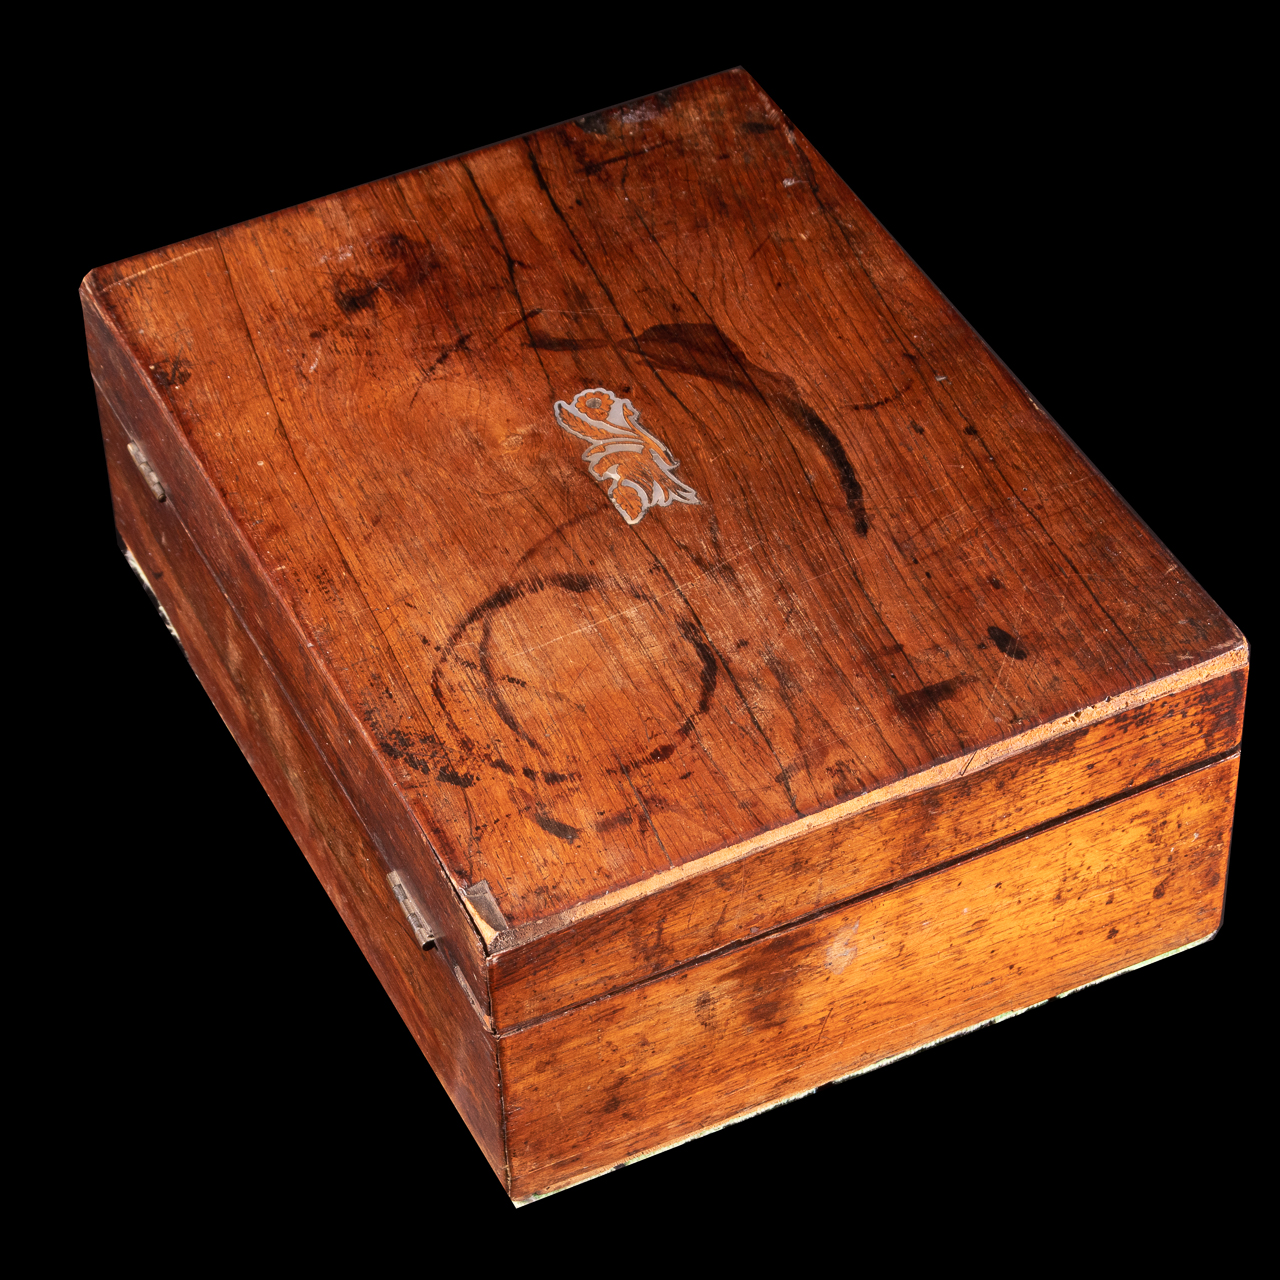 Jewellery Box with Mother of Pearl Inlay - Image 4 of 5